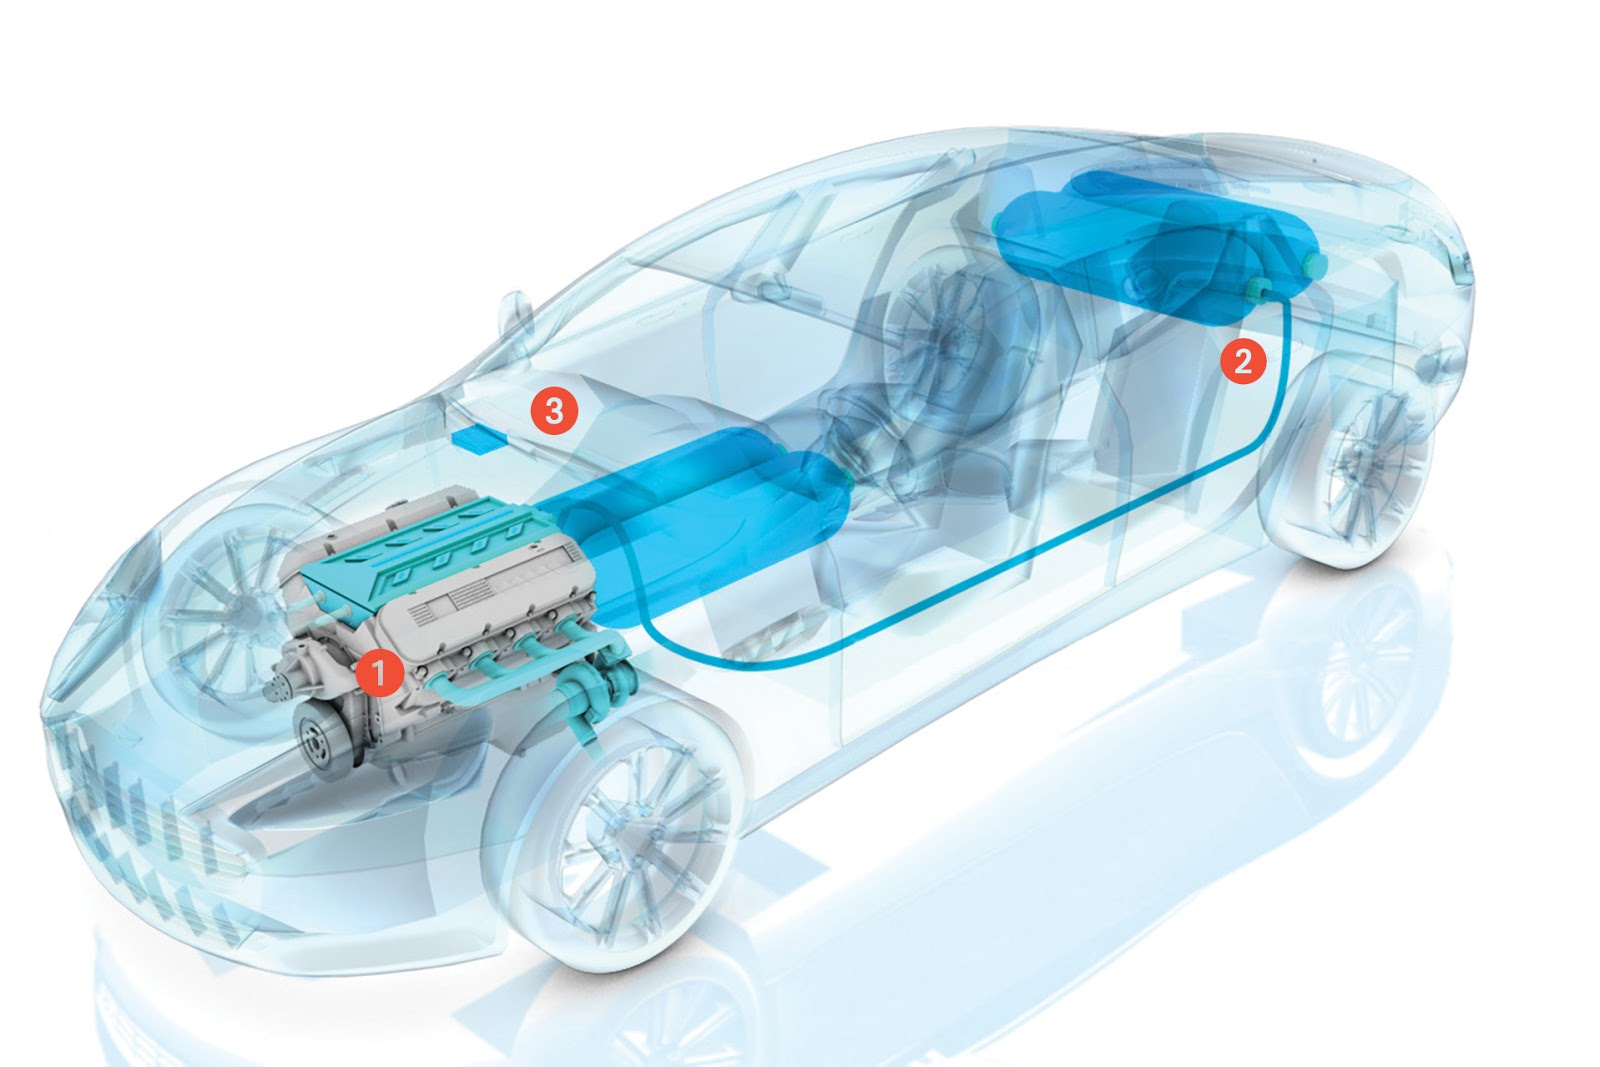 Race Car Swaps Fossil Fuels For Hydrogen Power